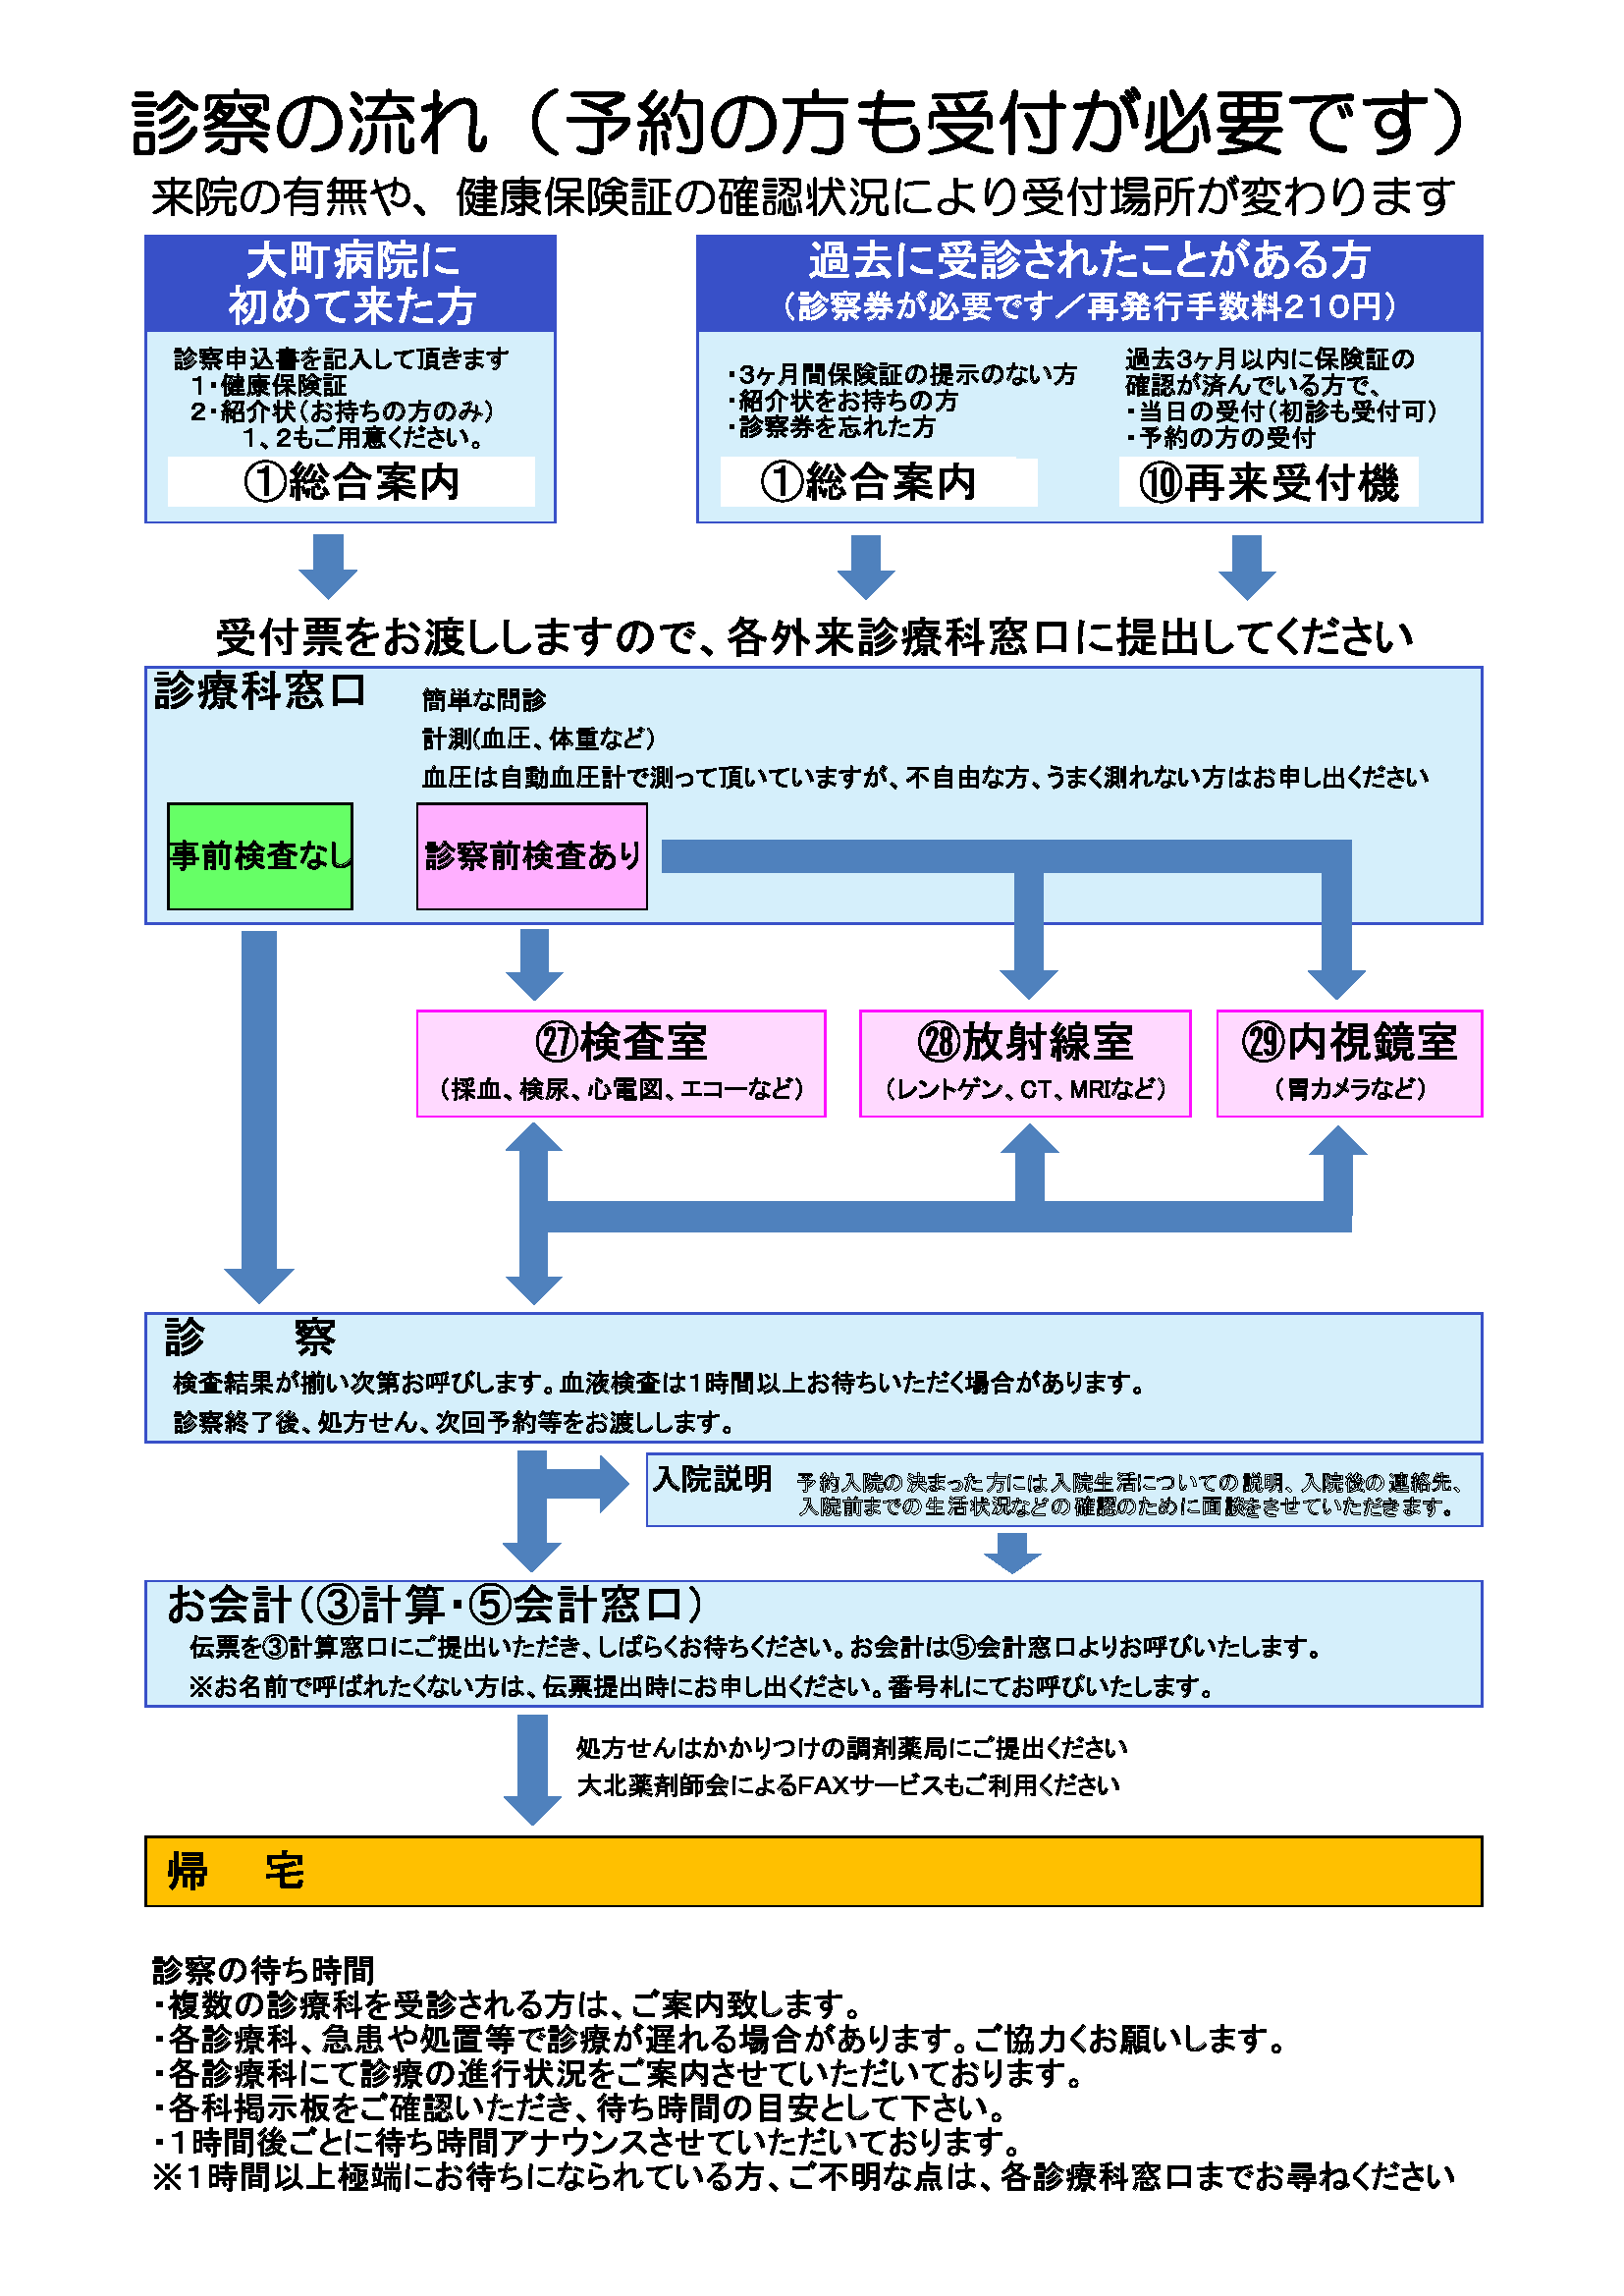 https://www.omachi-hospital.jp/images/Flow%20of%20examinations.png